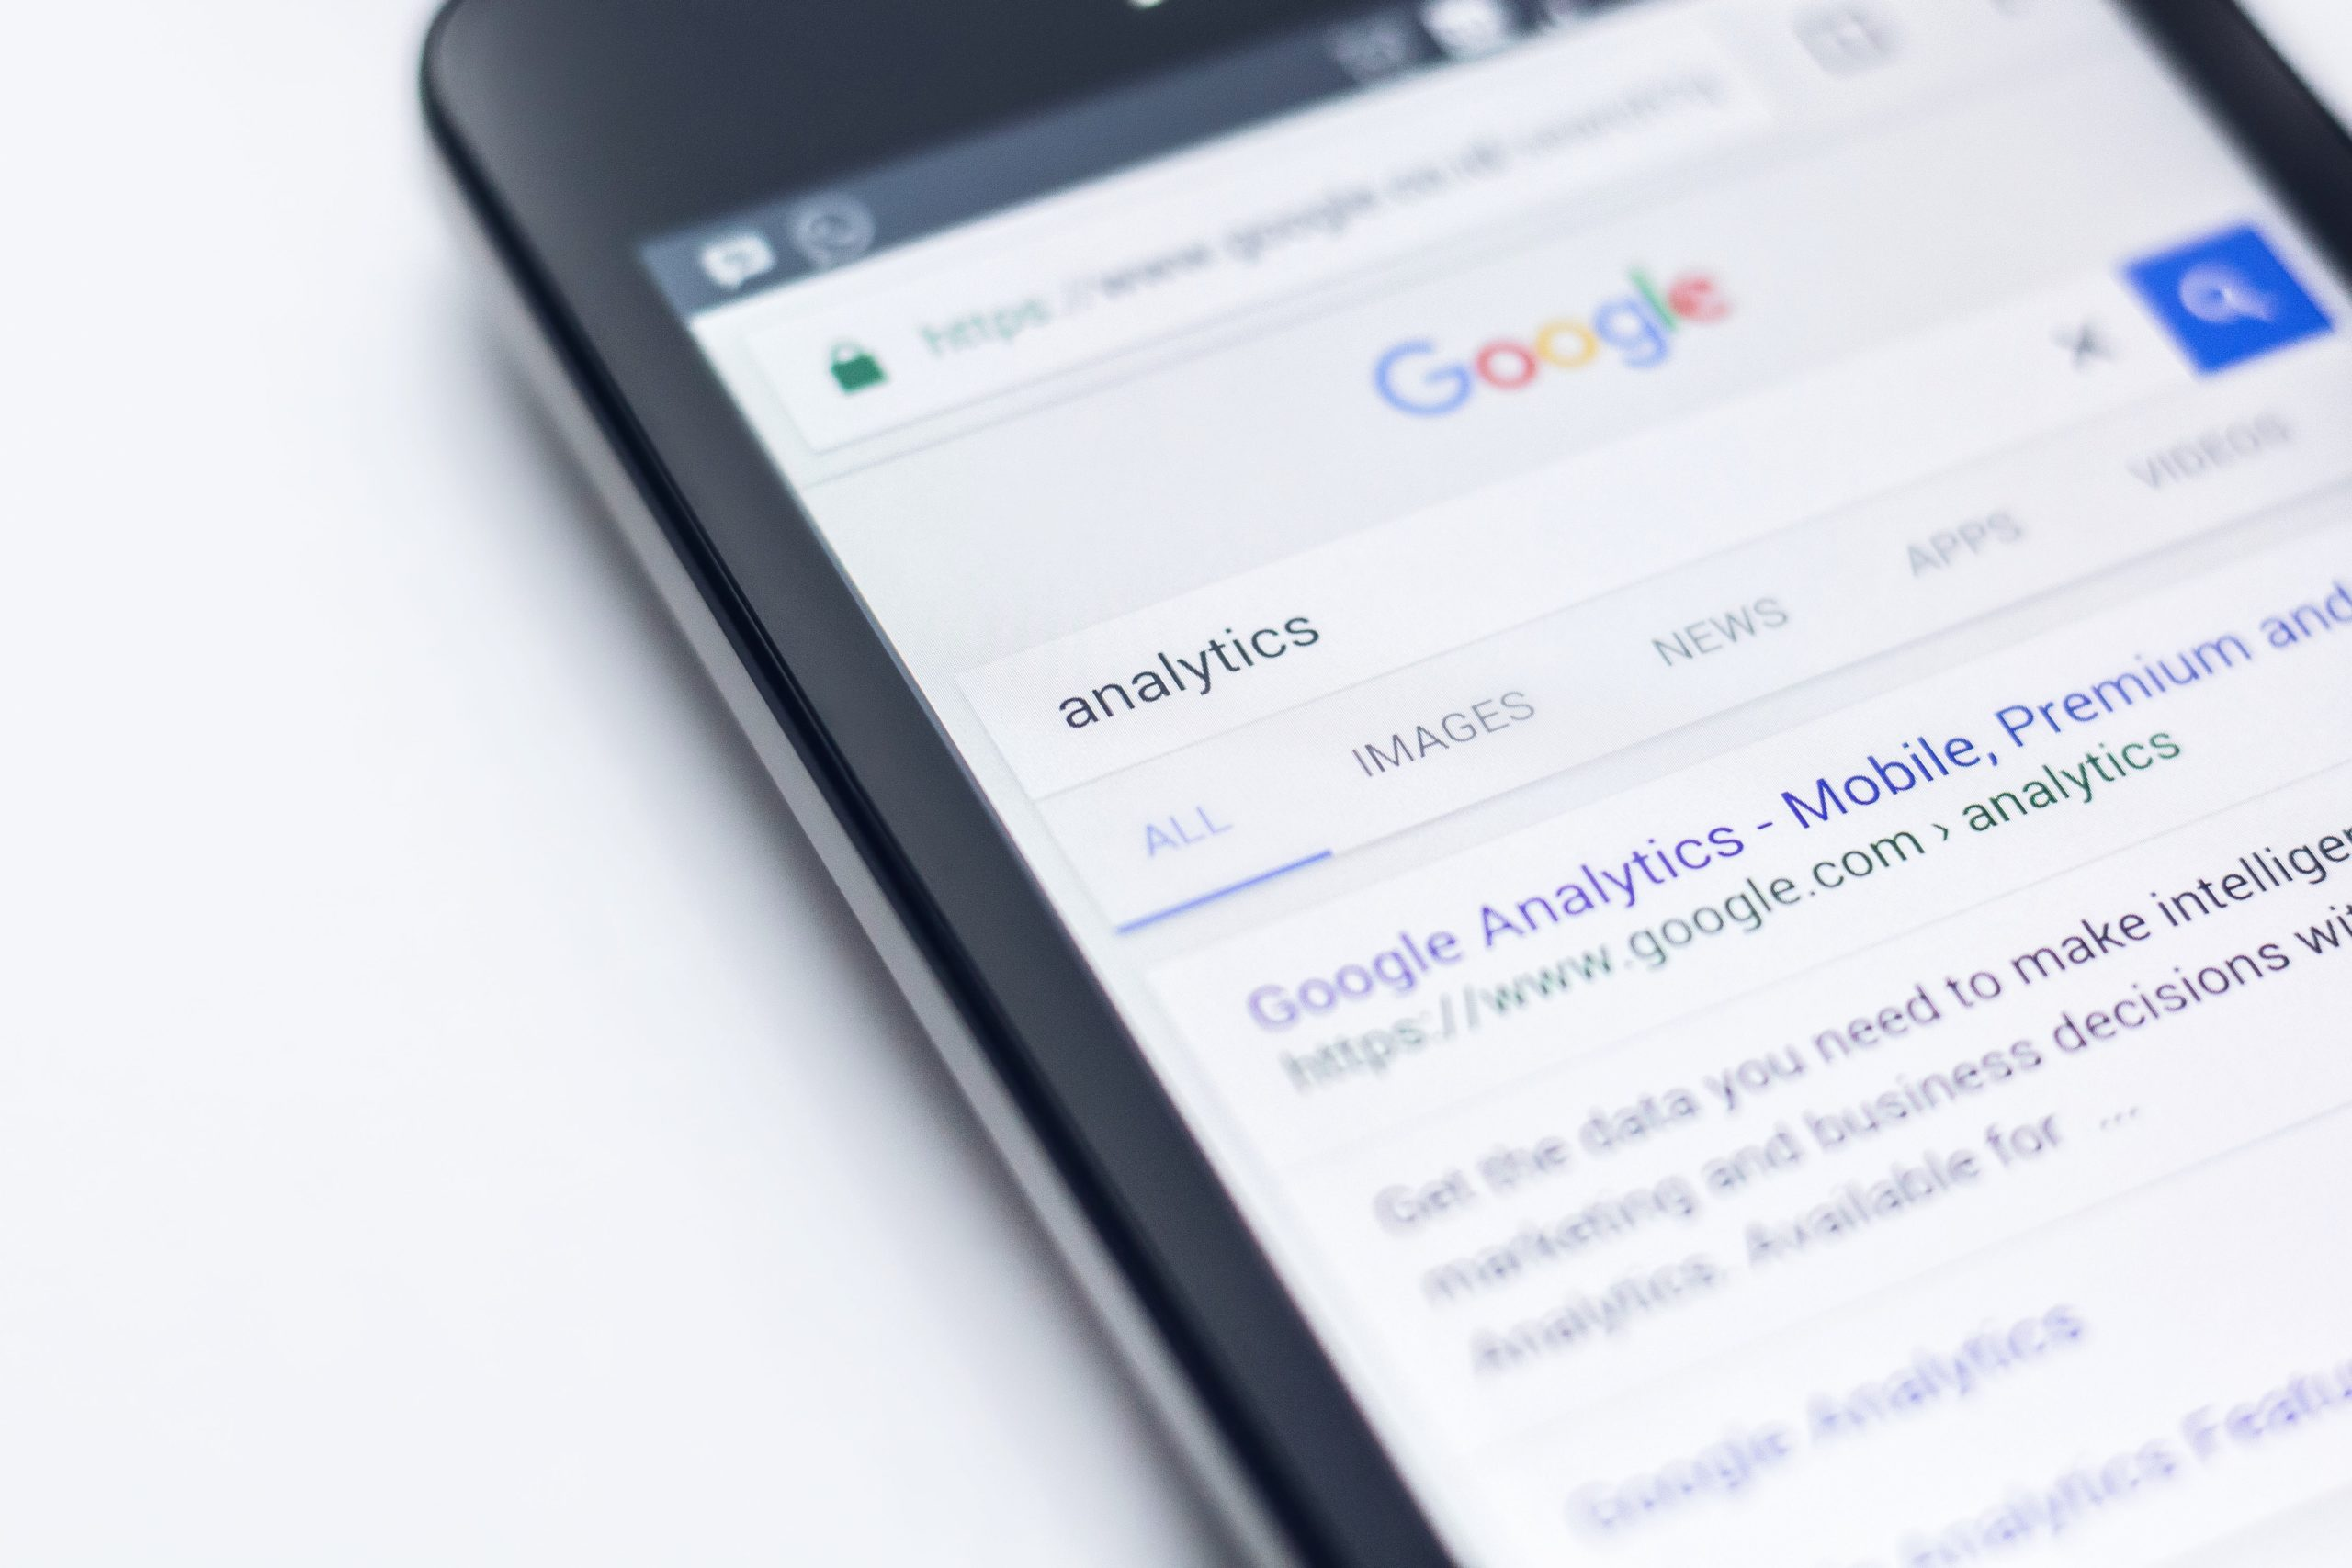 black iphone on white background showing google search for the word analytics